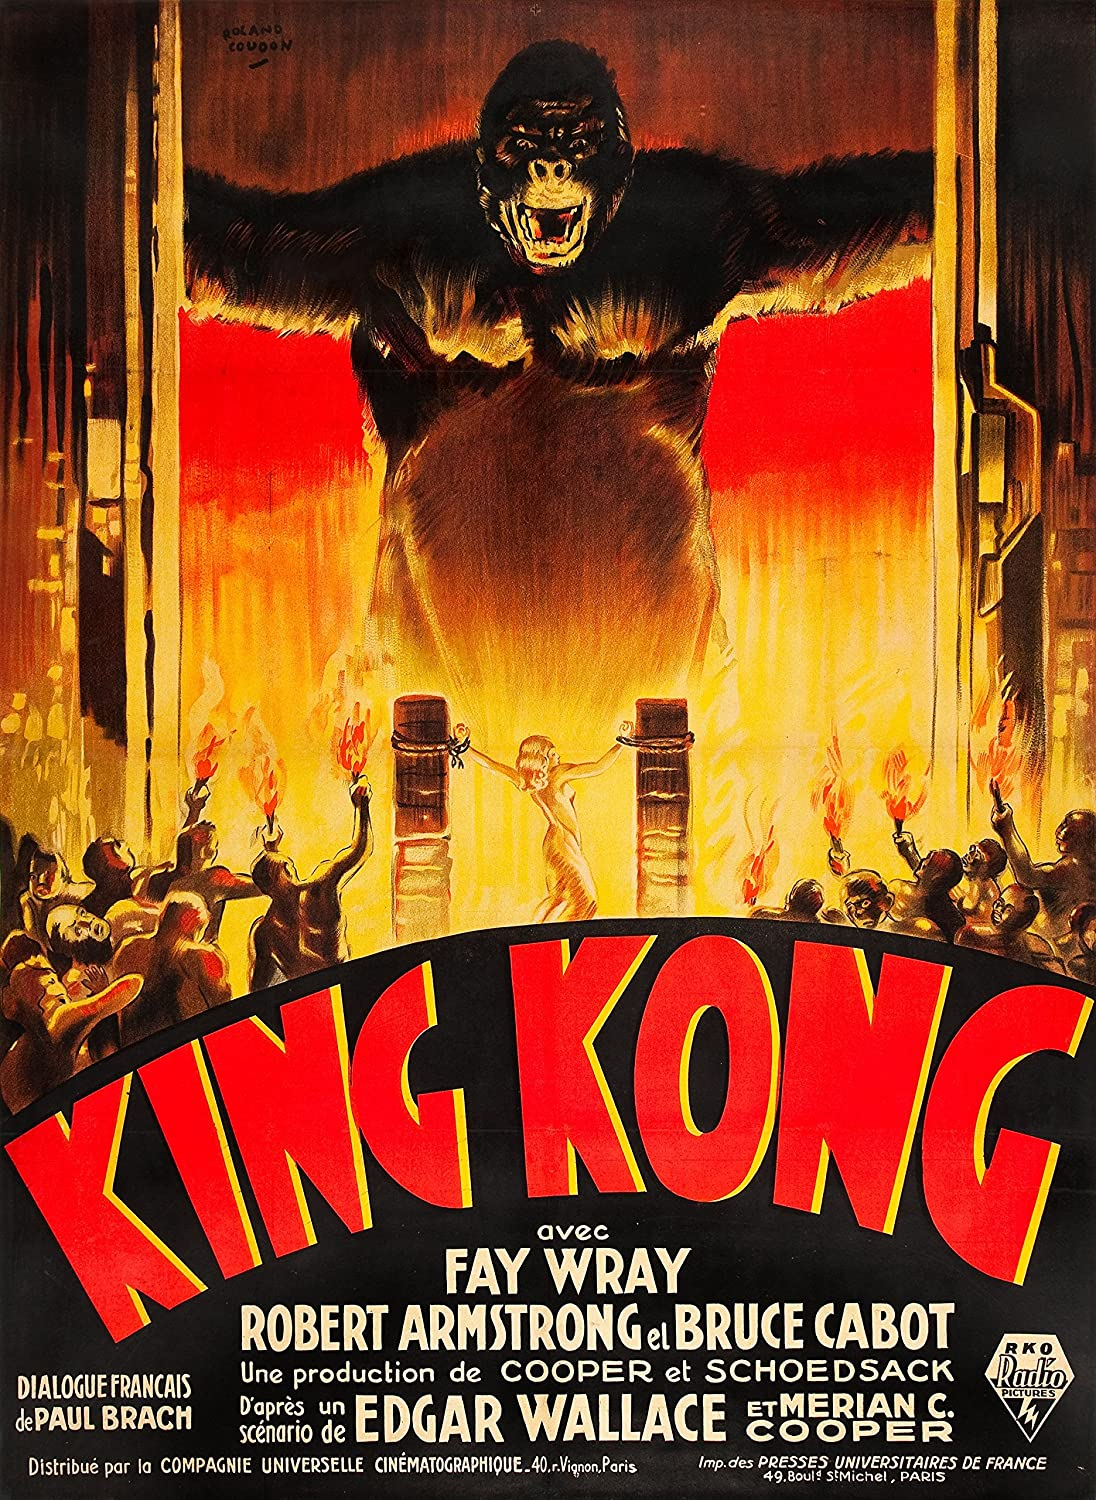 Movie Posters King Kong (1933) 24x36 inches